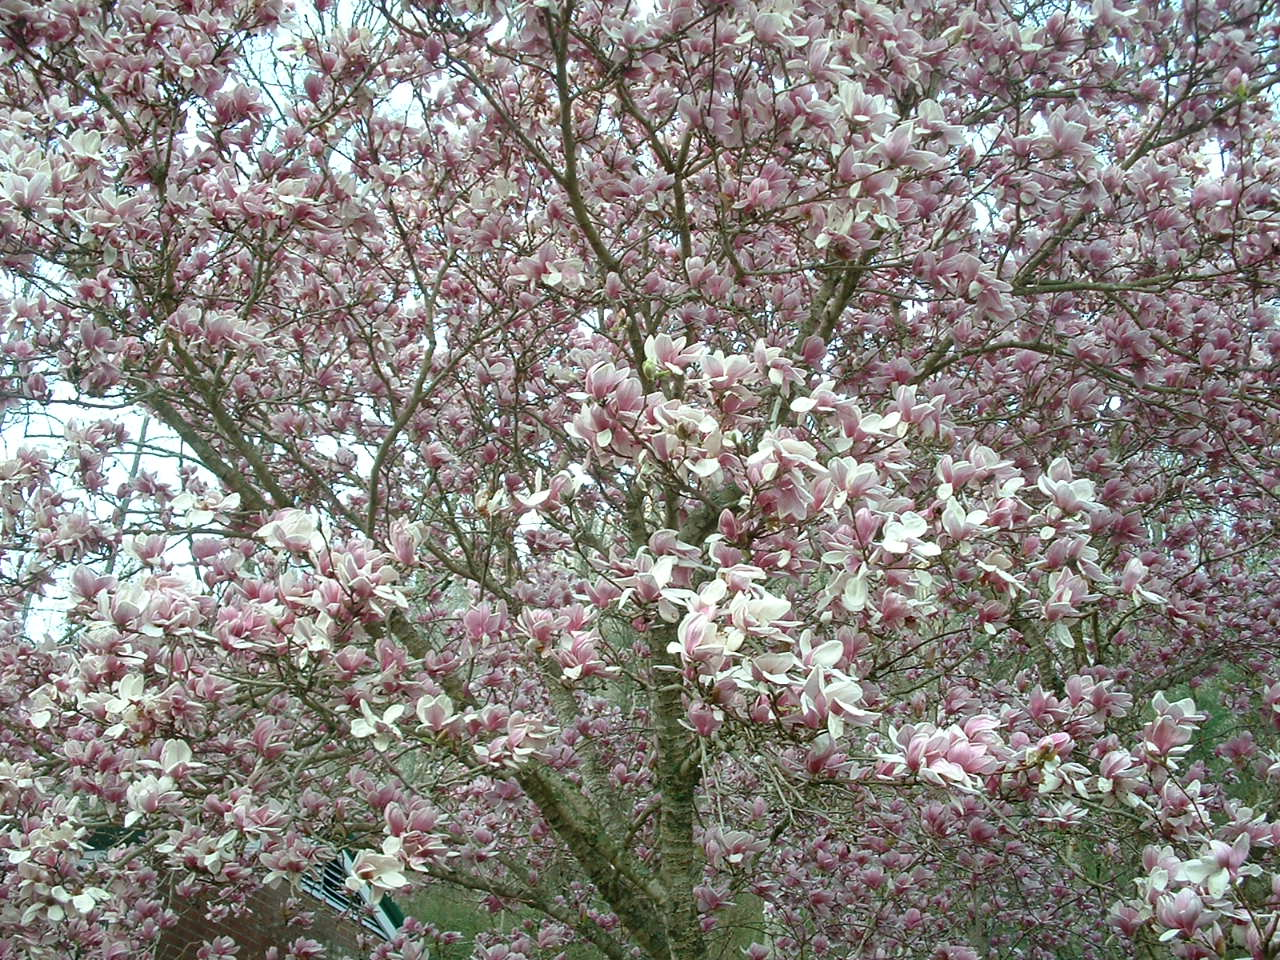 appalachian spring Appalachian spring is within the scope of wikiproject classical music, which aims to improve, expand, copy edit, and maintain all articles related to classical music.